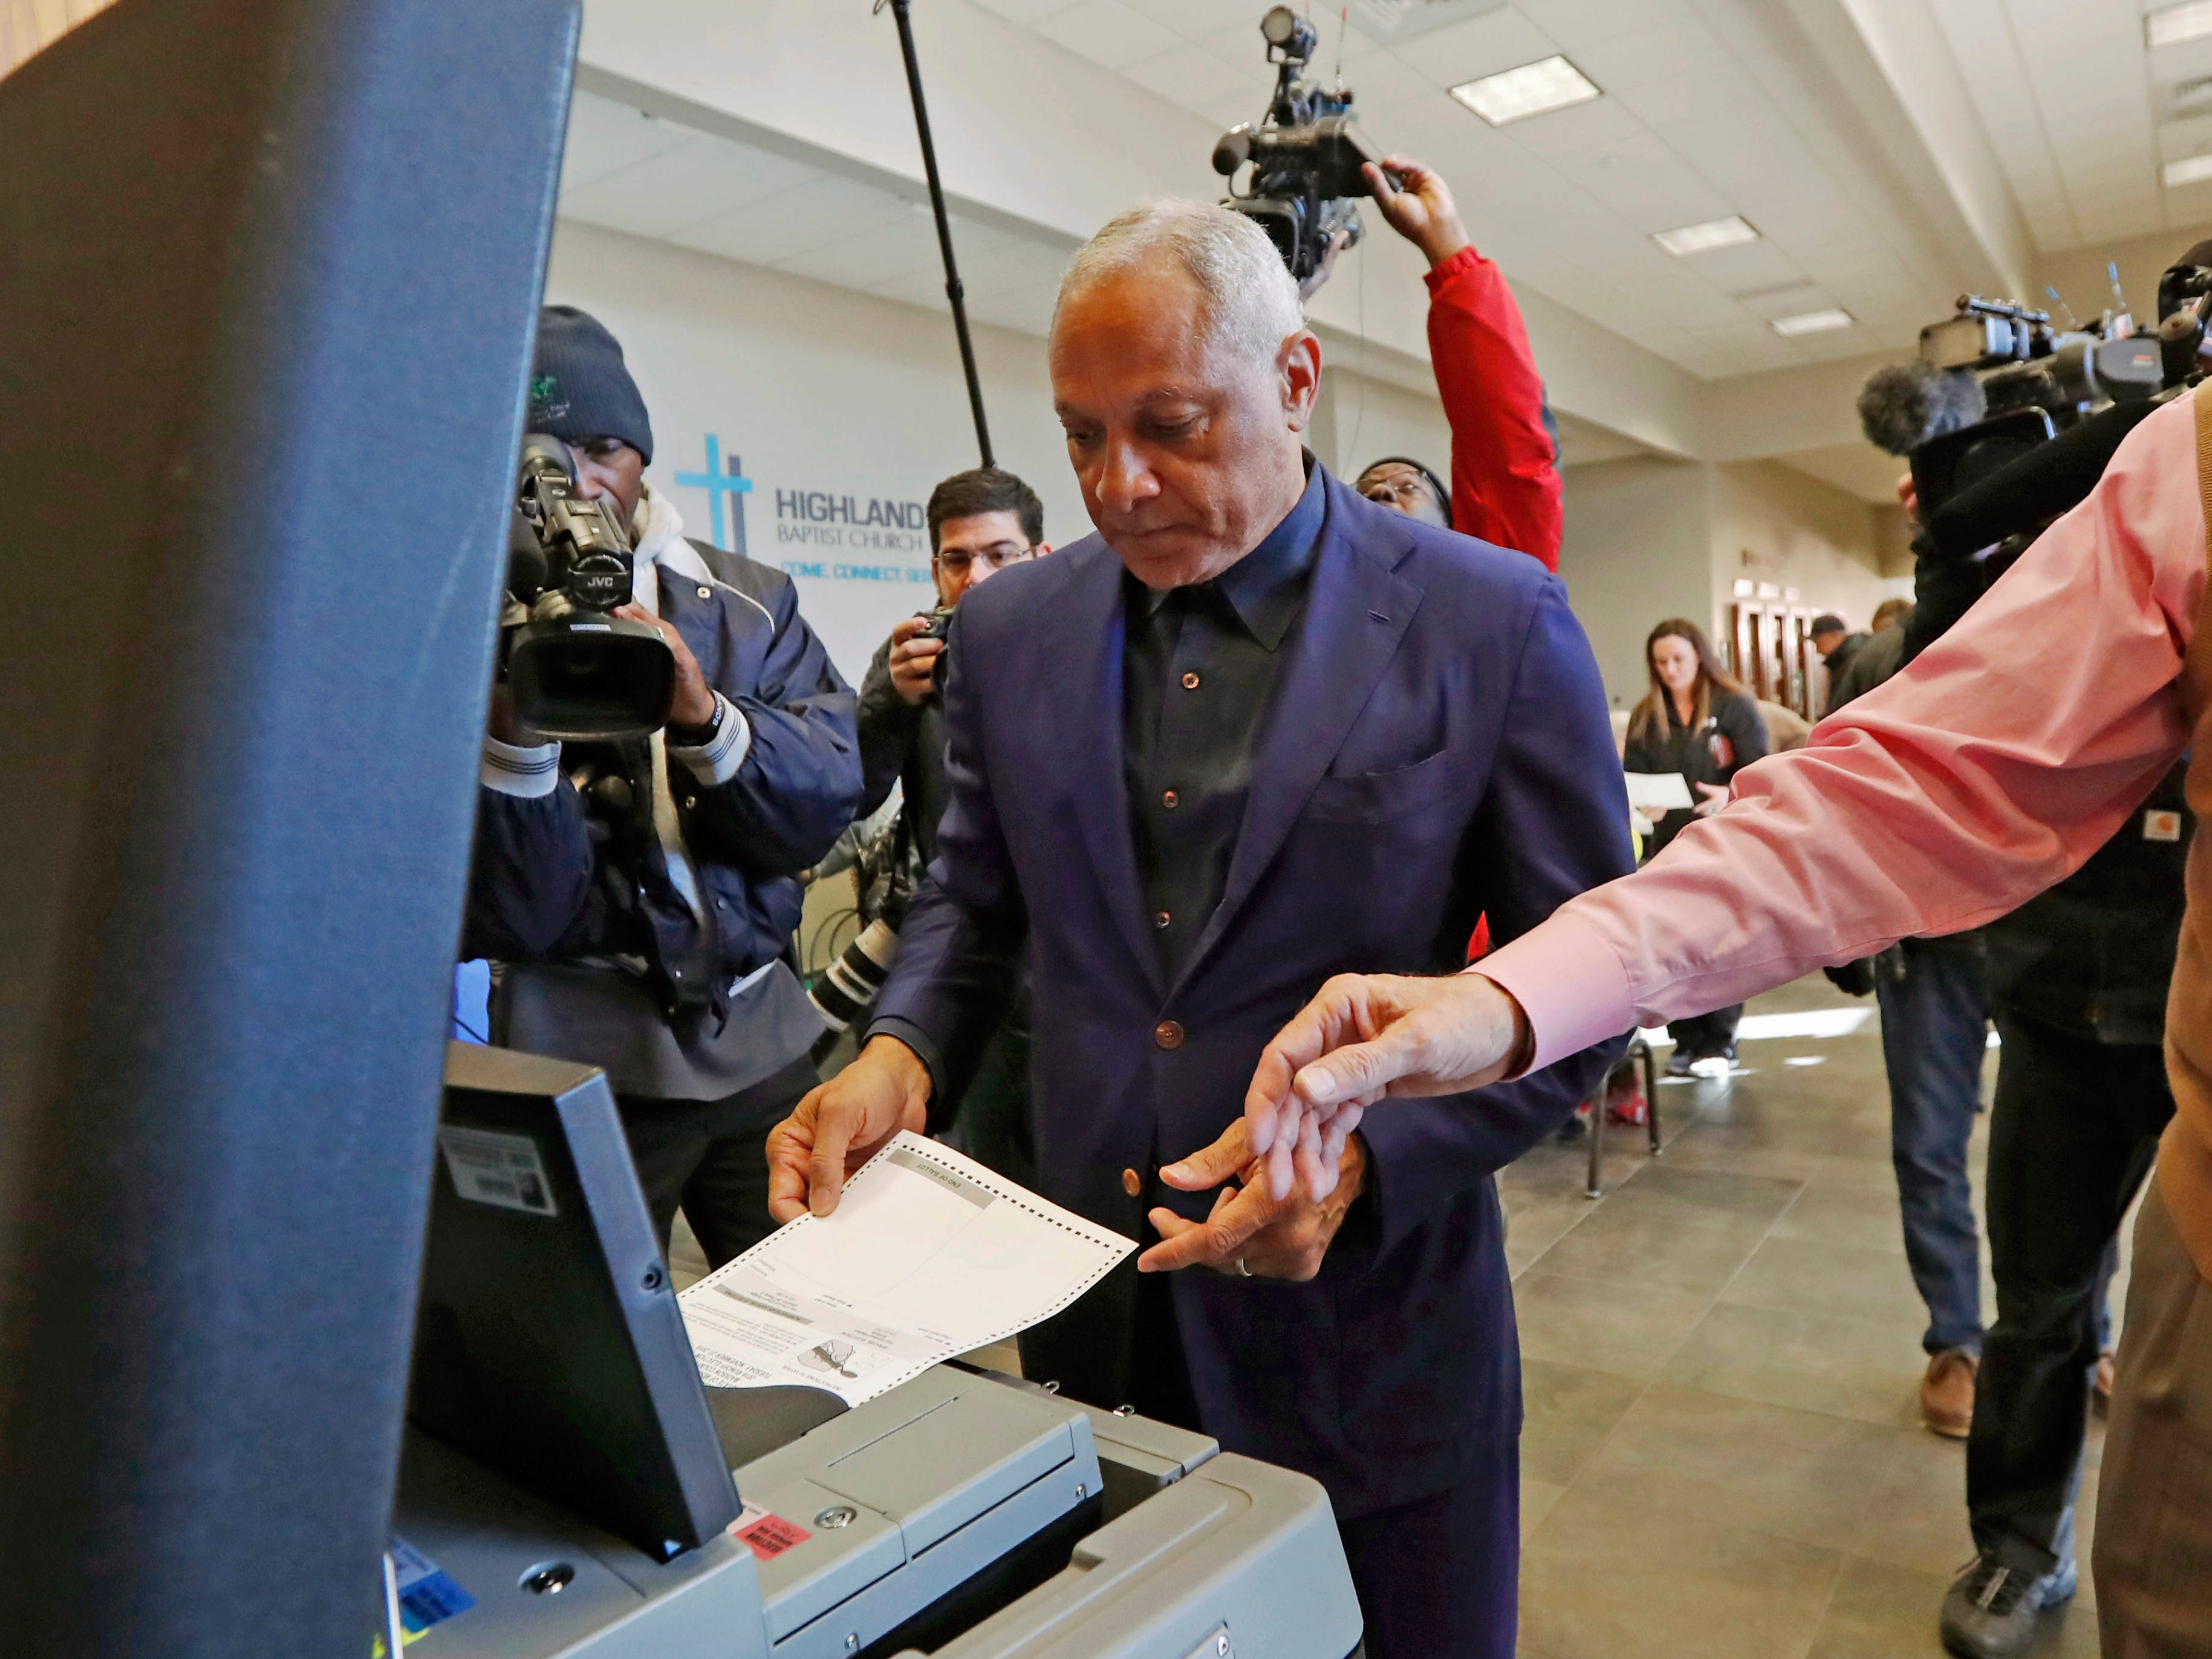 Democrat Mike Espy, left feeds his ballot into the submission machine, as directed by poll manager Larry Greer, Tuesday, Nov. 27, 2018 in Ridgeland, Miss. Mississippi voters are deciding the last U.S. Senate race of the midterms, choosing between Espy and Republican Sen. Cindy Hyde-Smith.